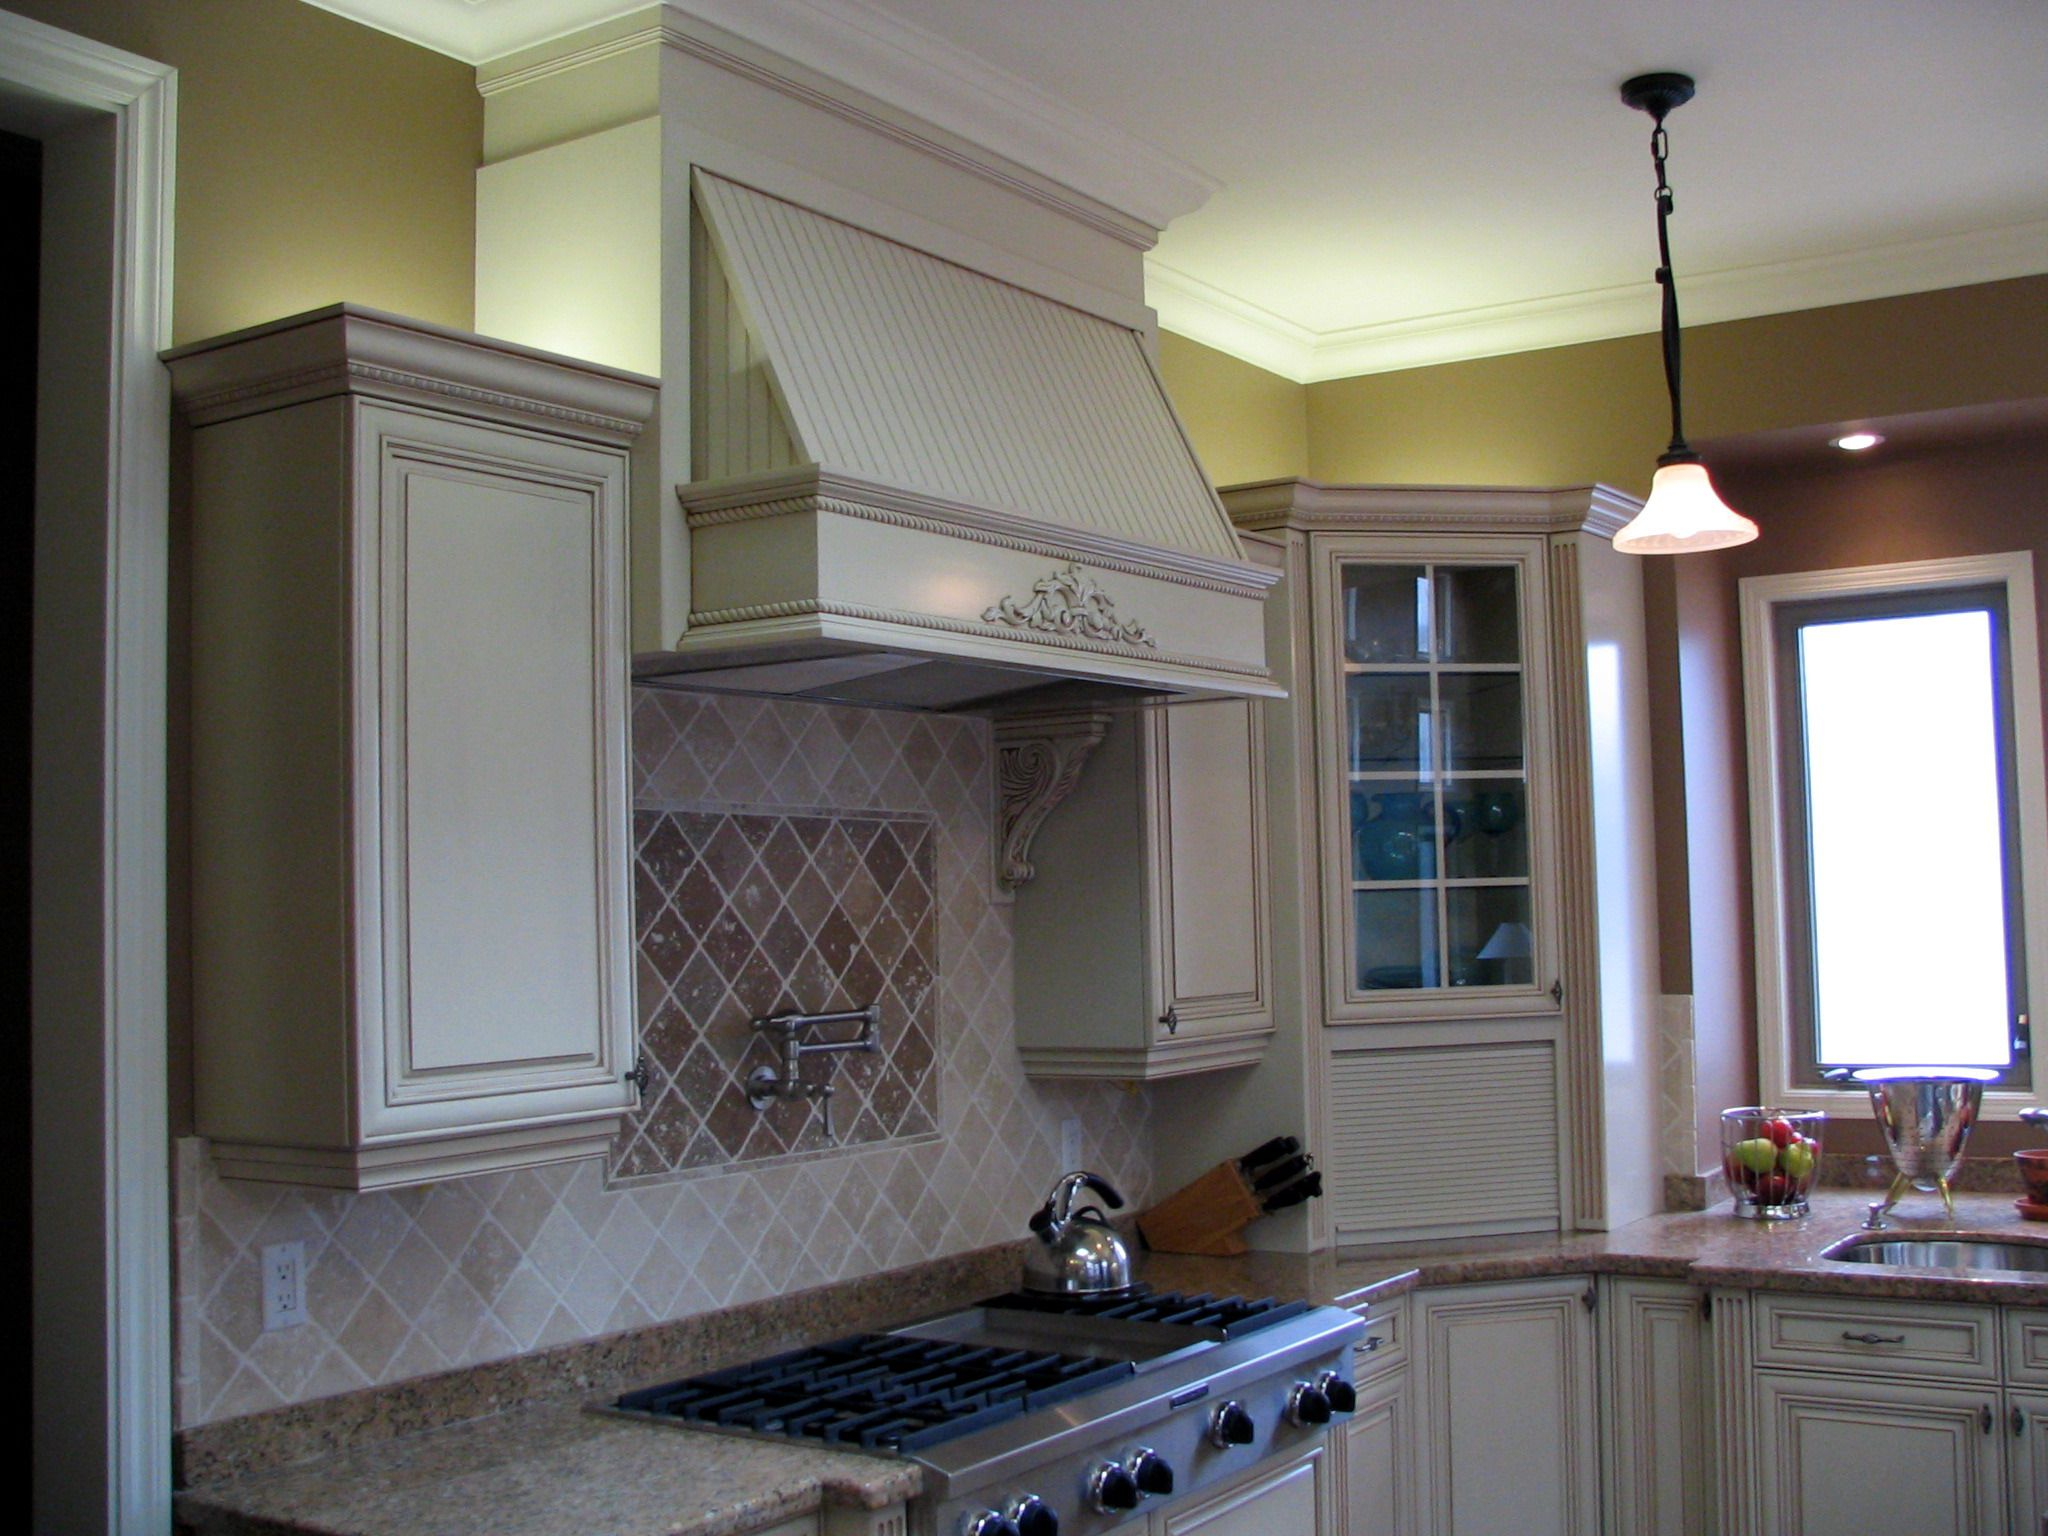 Large Decorative Range Hood above 48\